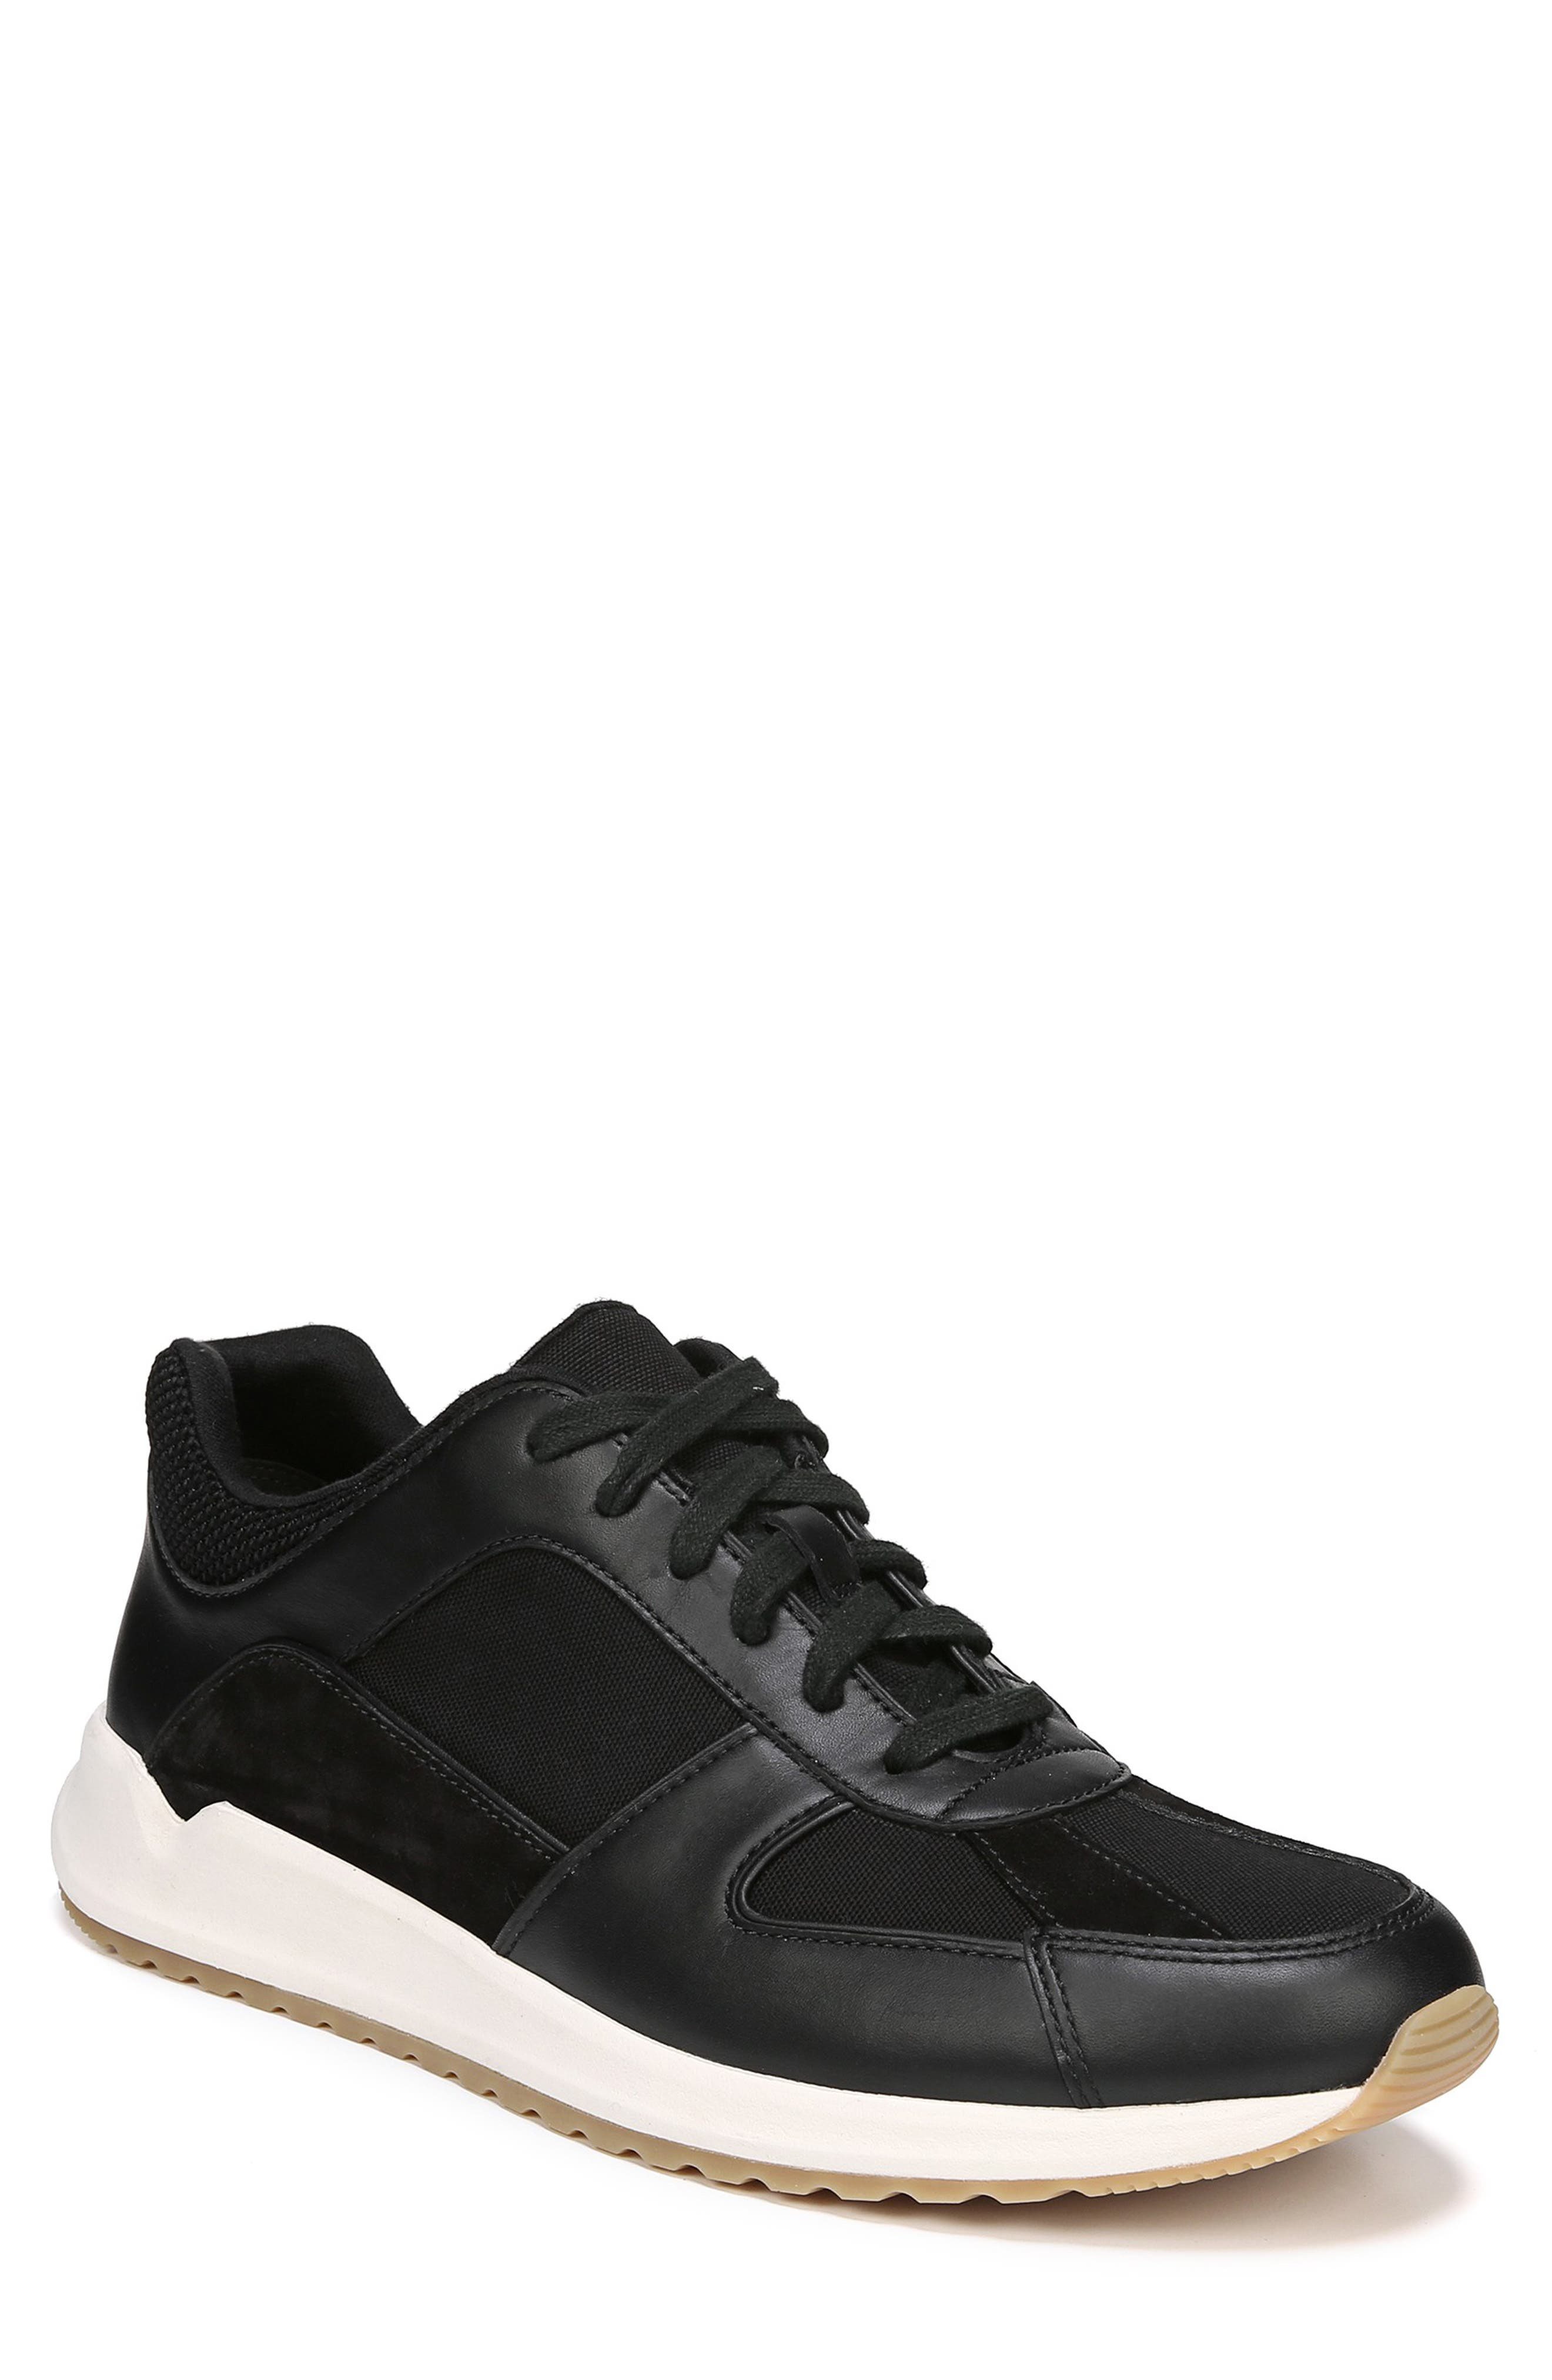 Griffin Sneaker,                             Main thumbnail 1, color,                             BLACK/ MADDOX